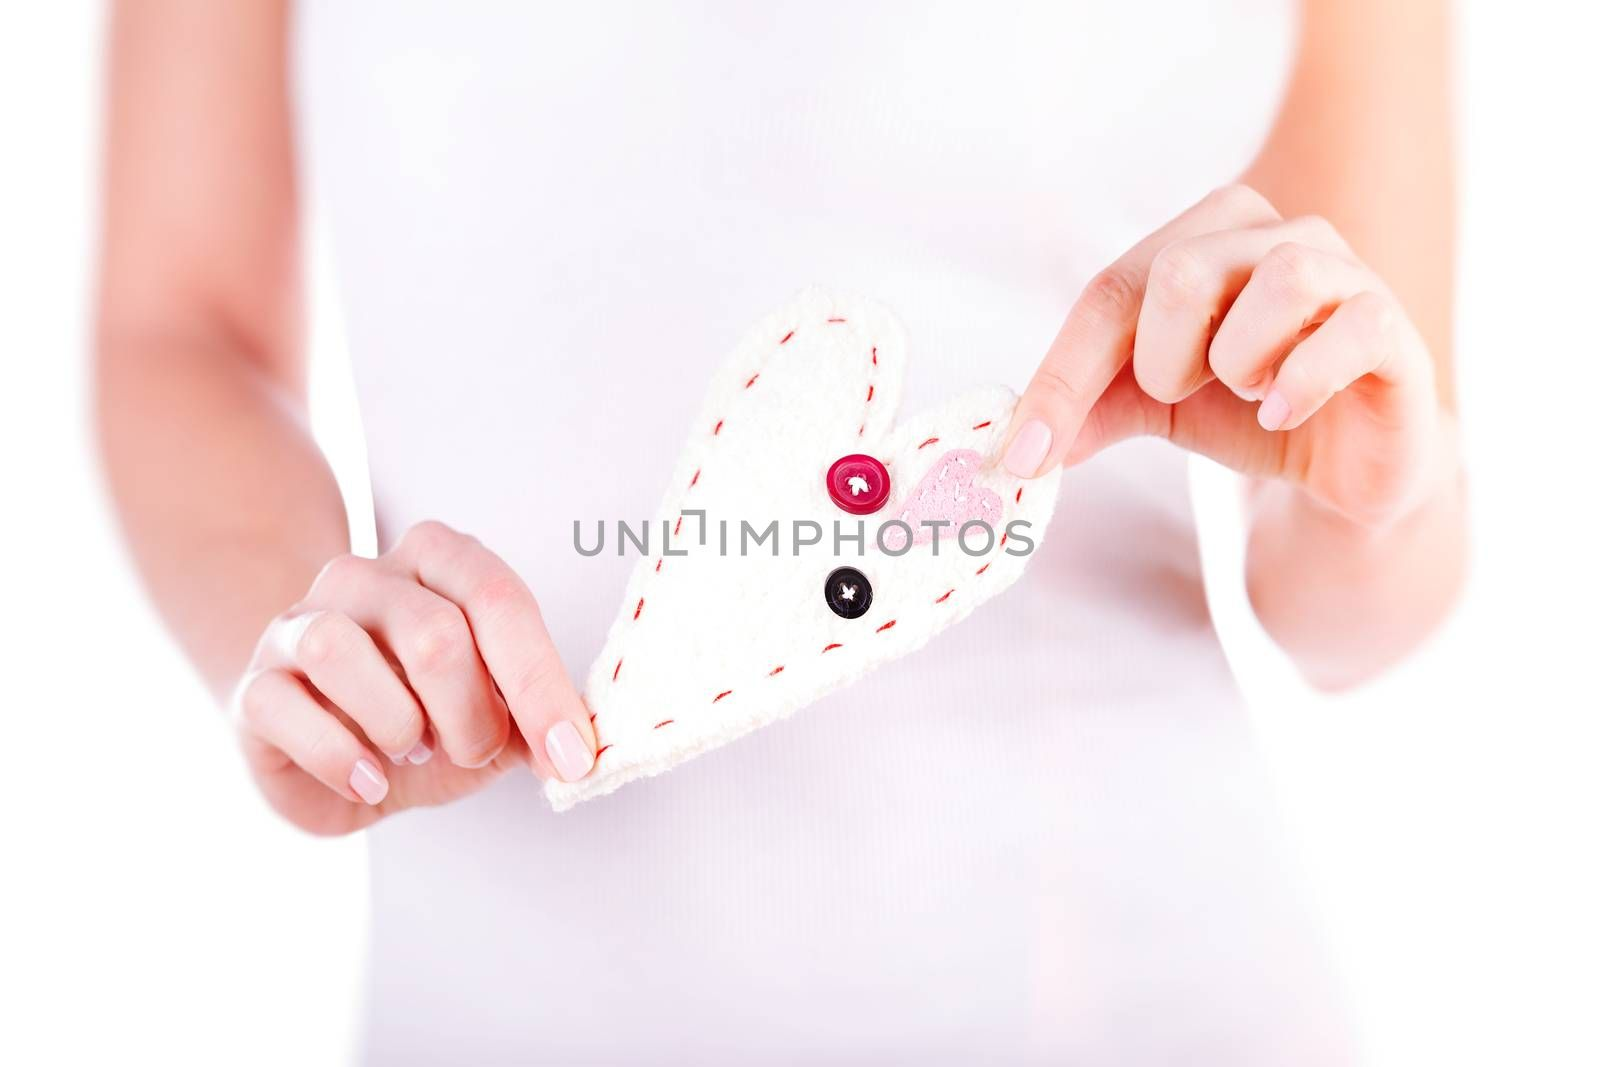 Woman holding in hands handmade sewn soft heart over white background, body part, great gift for Valentines day, love concept